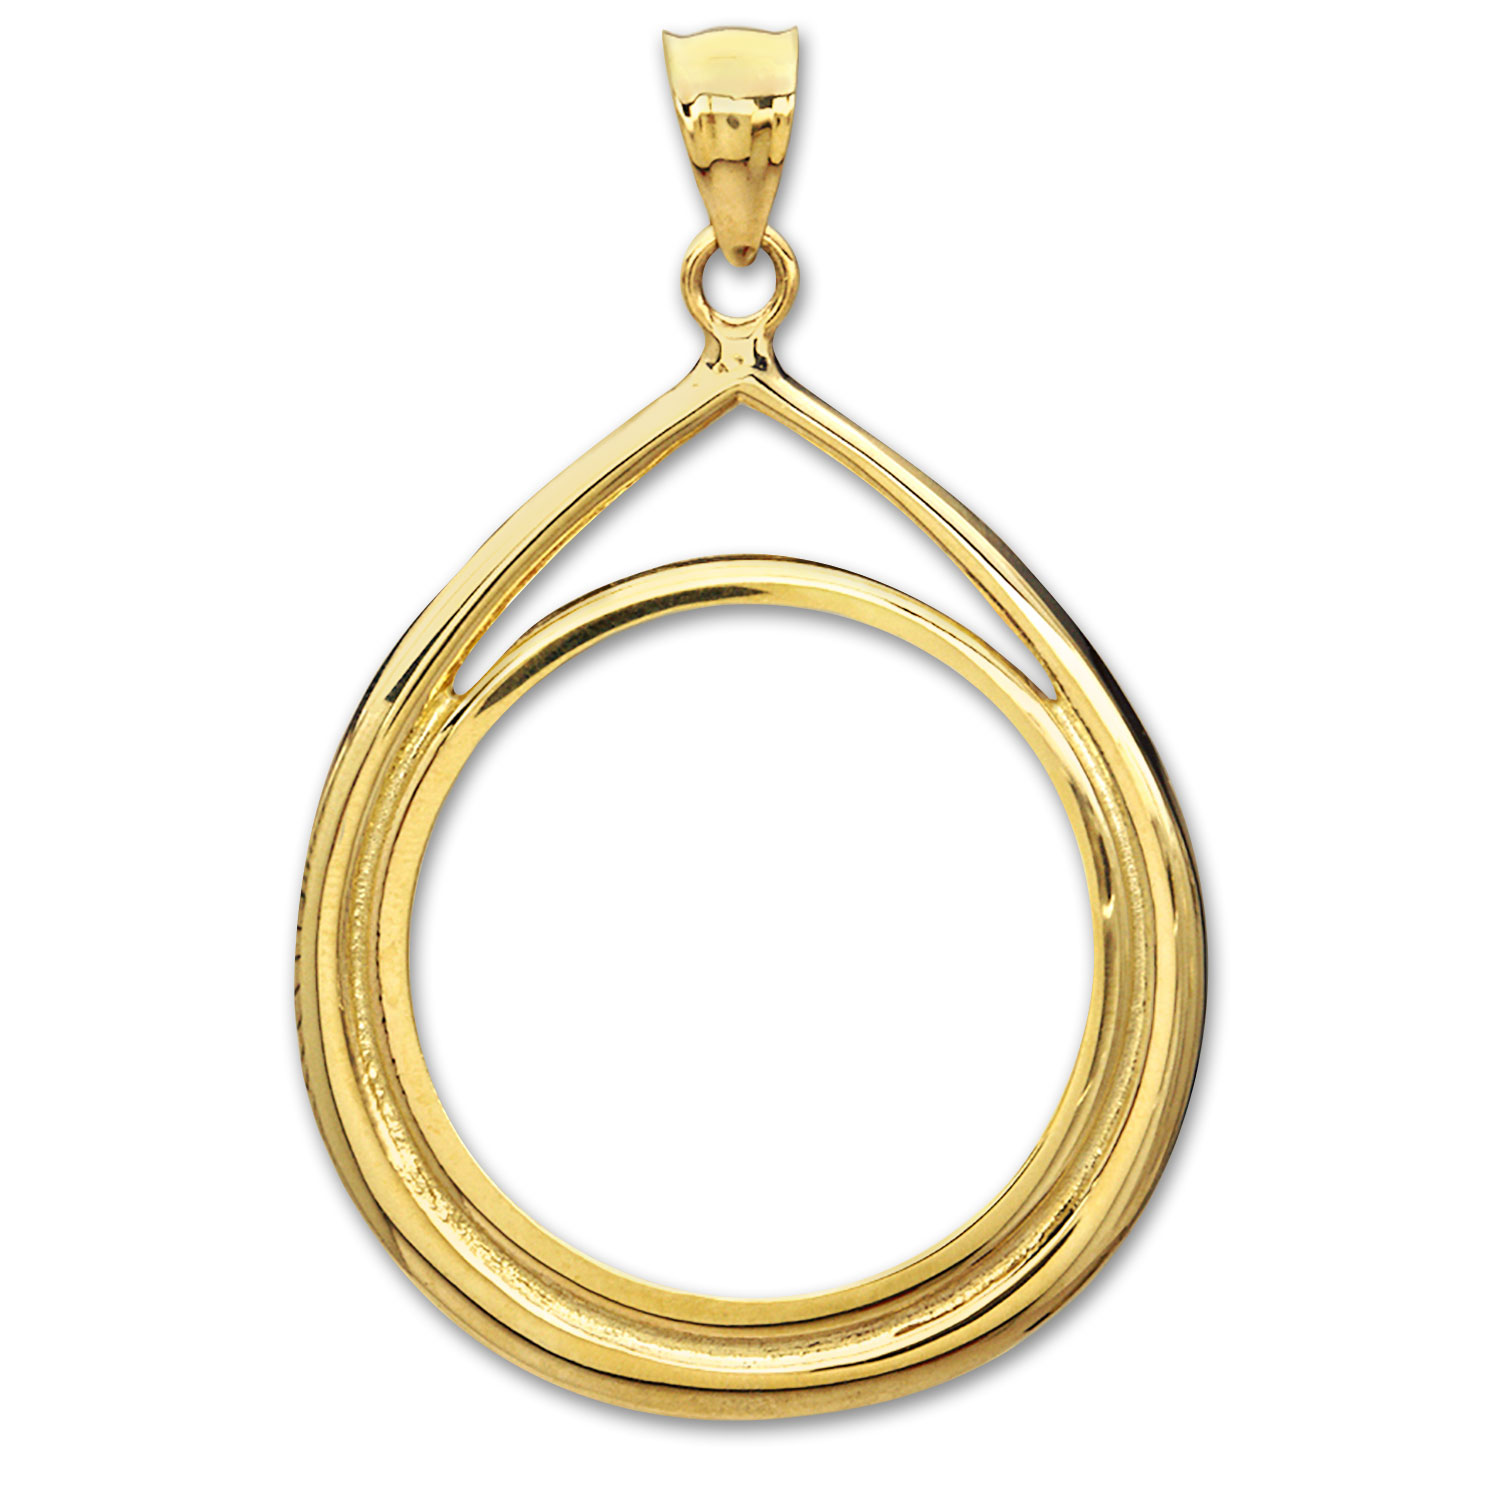 14K Gold Prong Tear Drop Coin Bezel - 32.7 mm